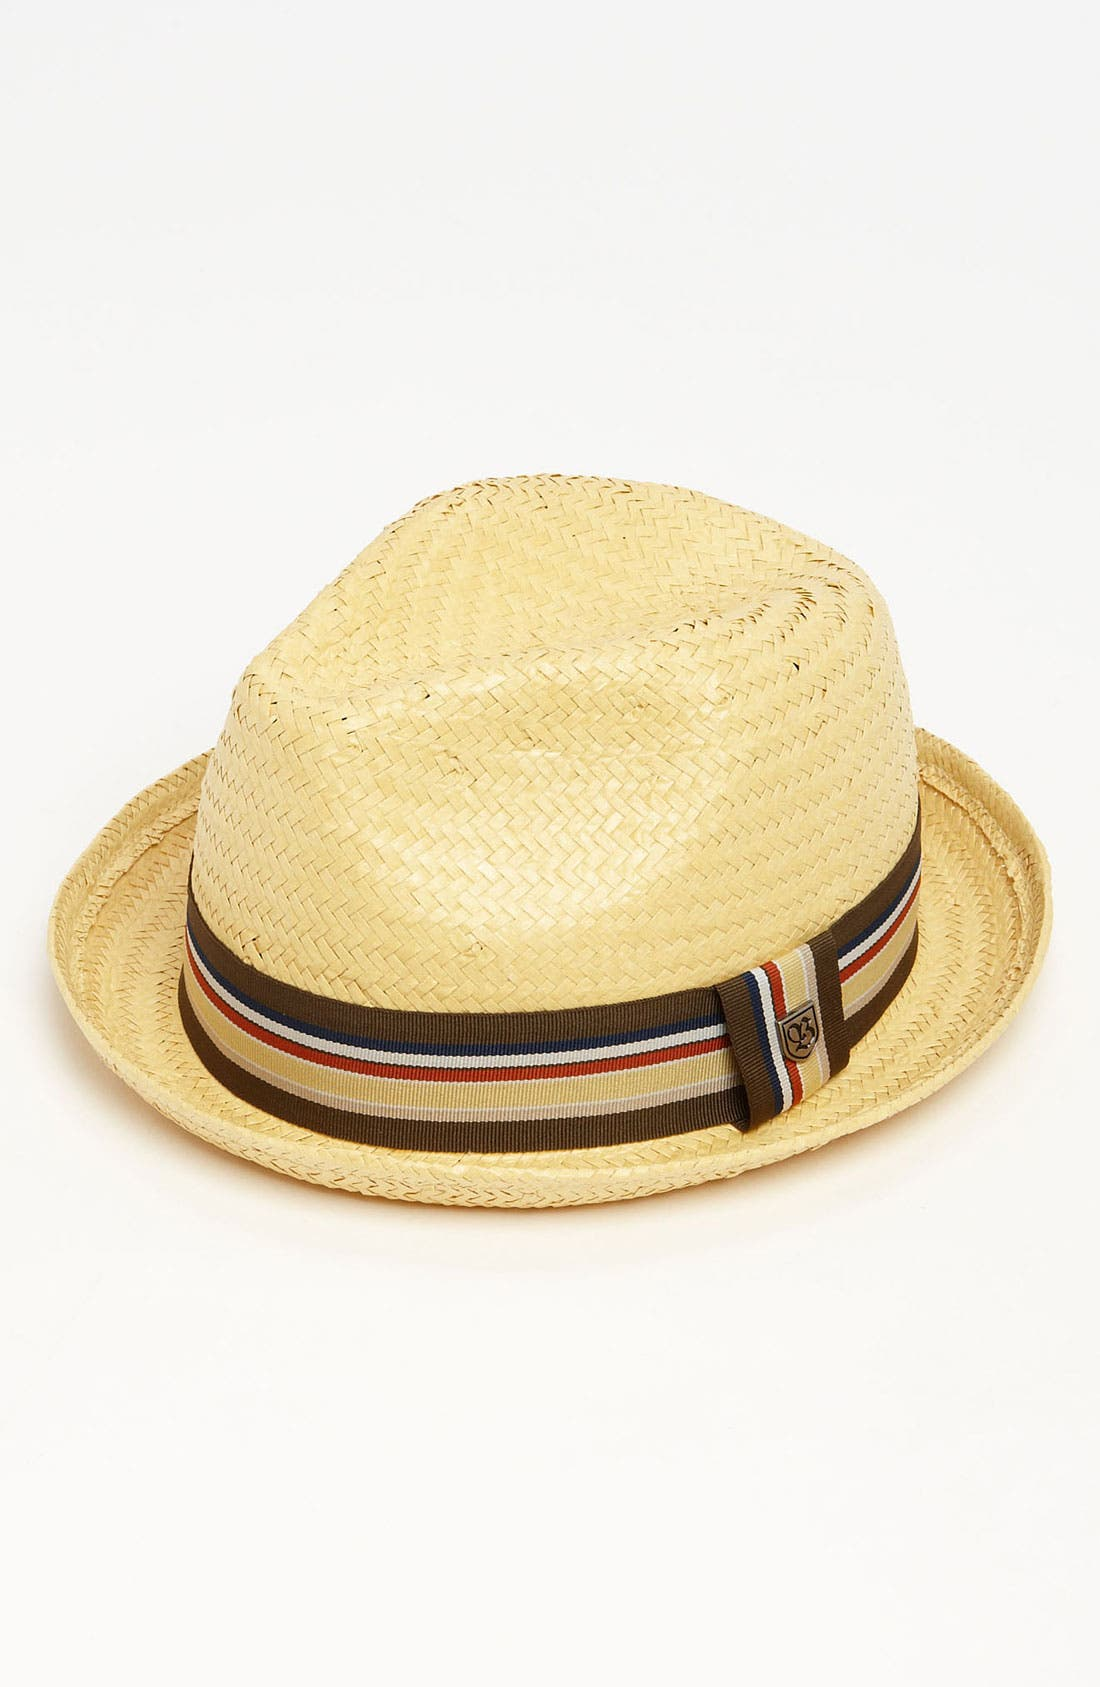 'Castor' Straw Fedora,                         Main,                         color, Tan